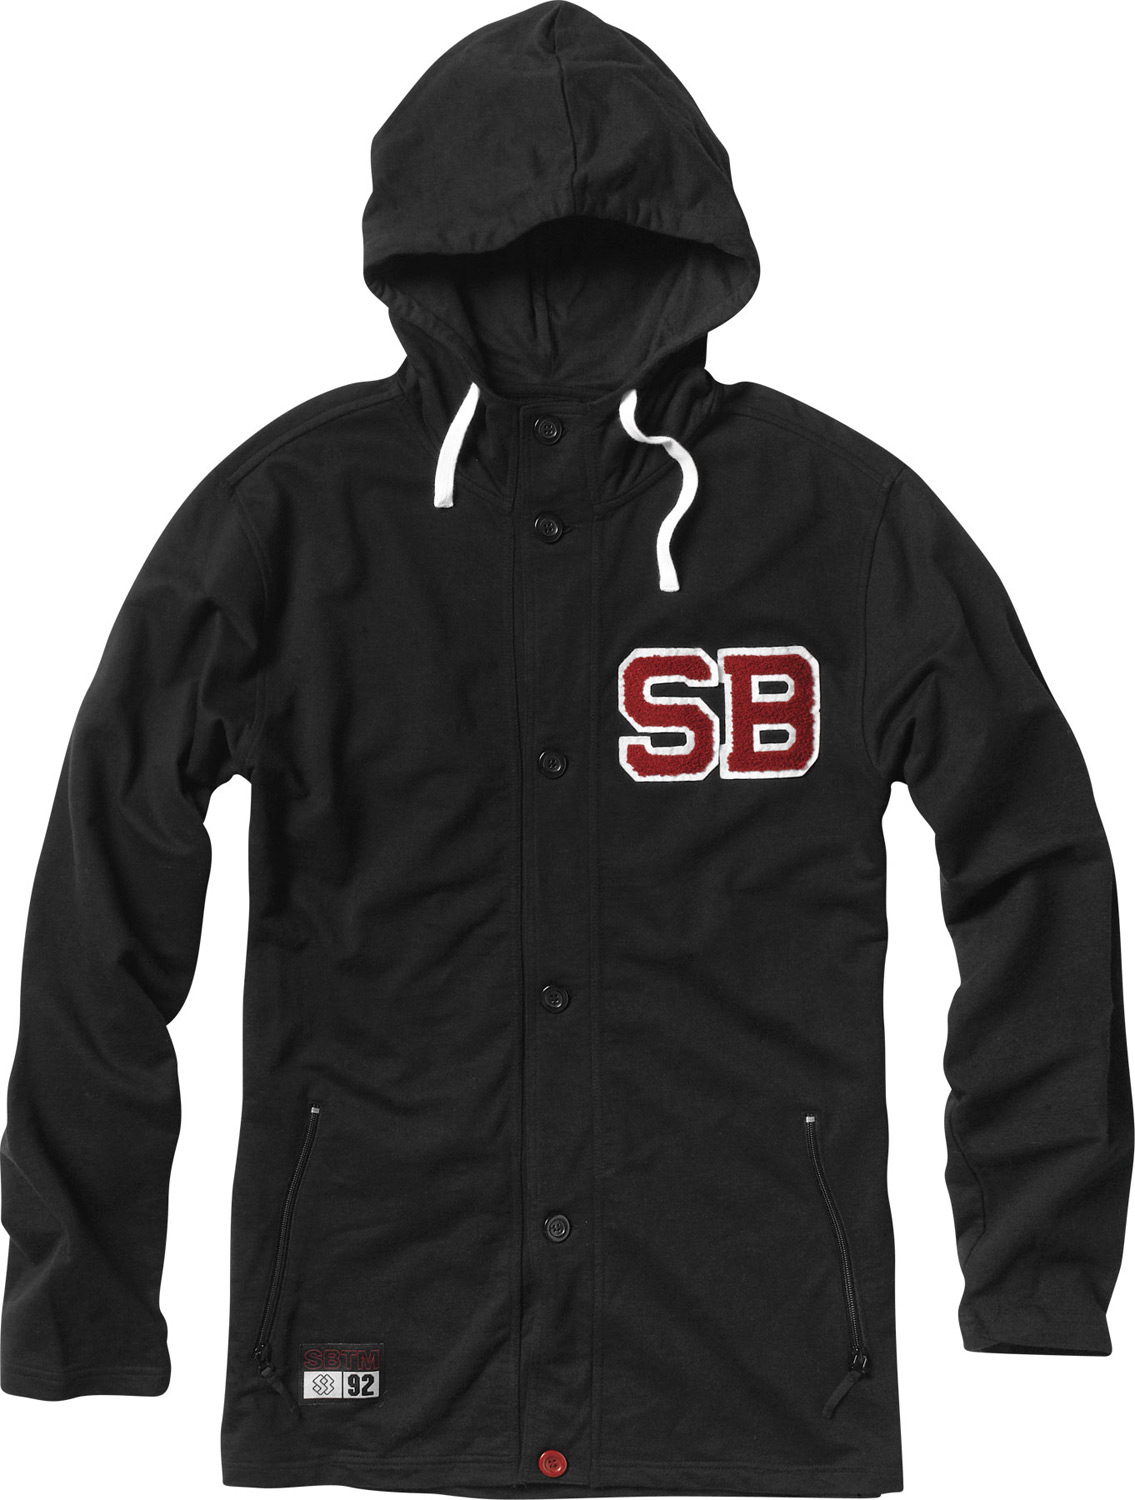 Key Features of the Special Blend Pregame Hoodie: Button-up cardigan style hoodie Freedom fit 100% Cotton French Terry 300g Chenille patch at left chest Zippered pockets - $44.95